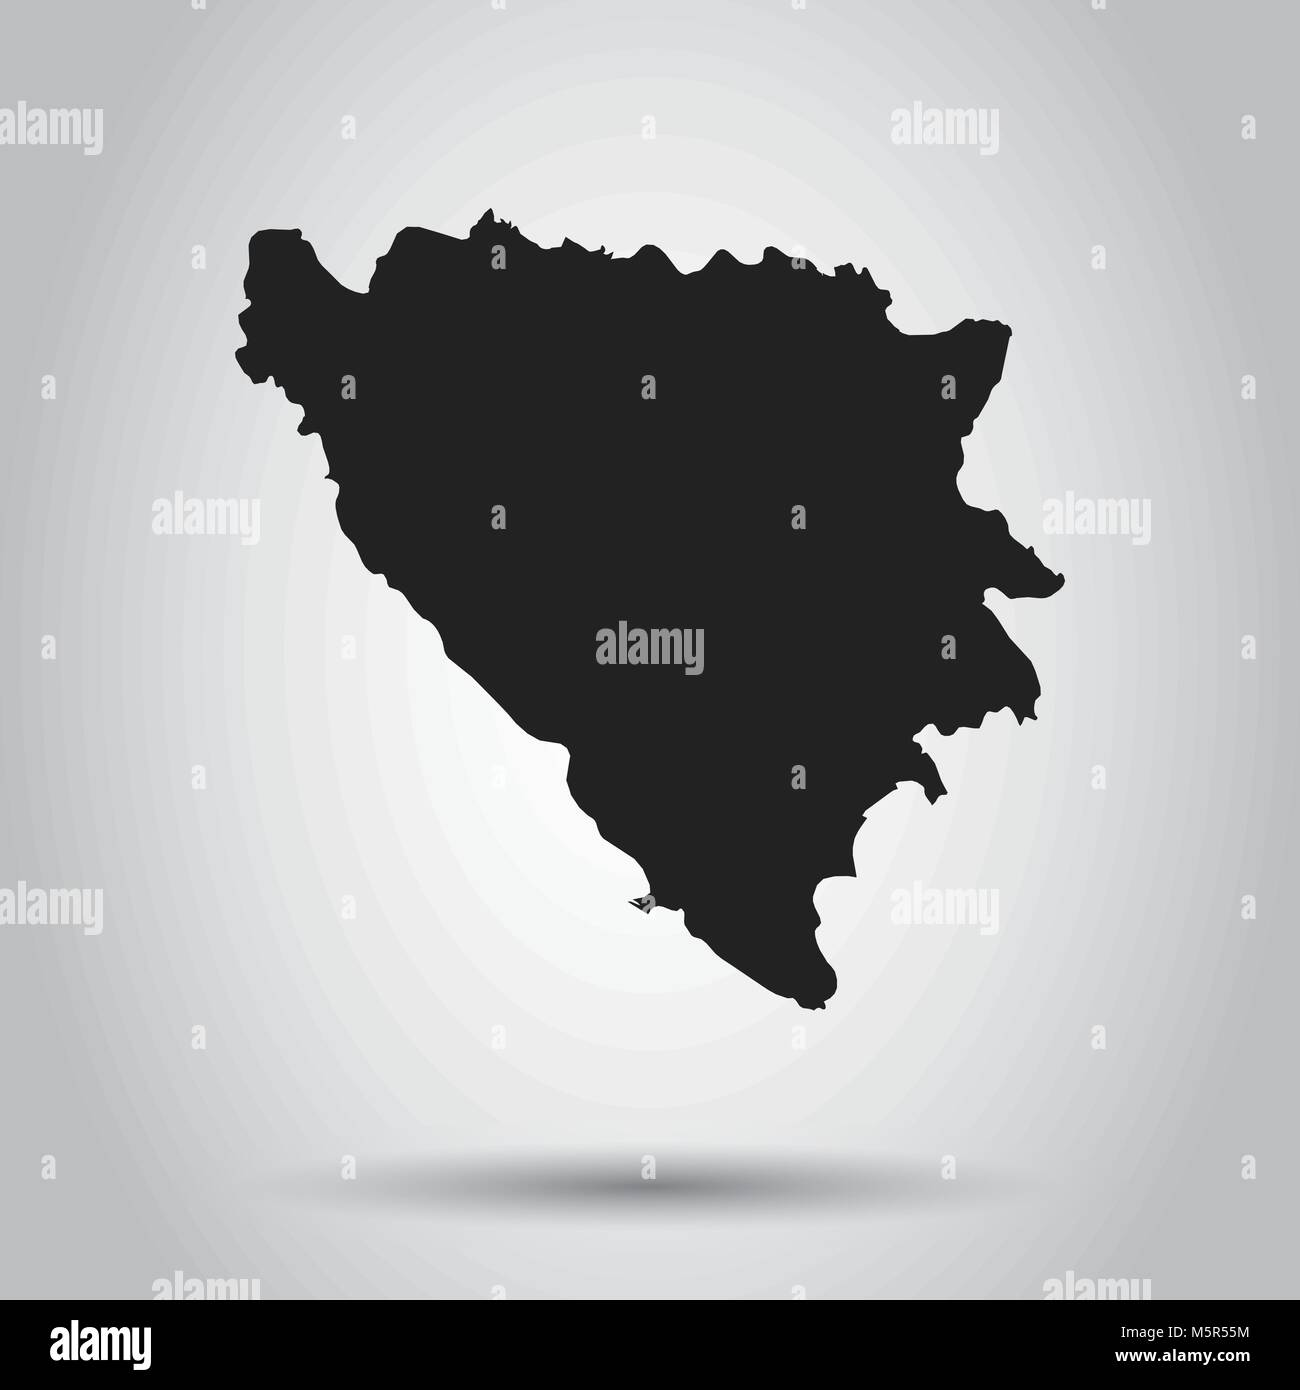 Bosnia and Herzegovina vector map. Black icon on white background. - Stock Vector